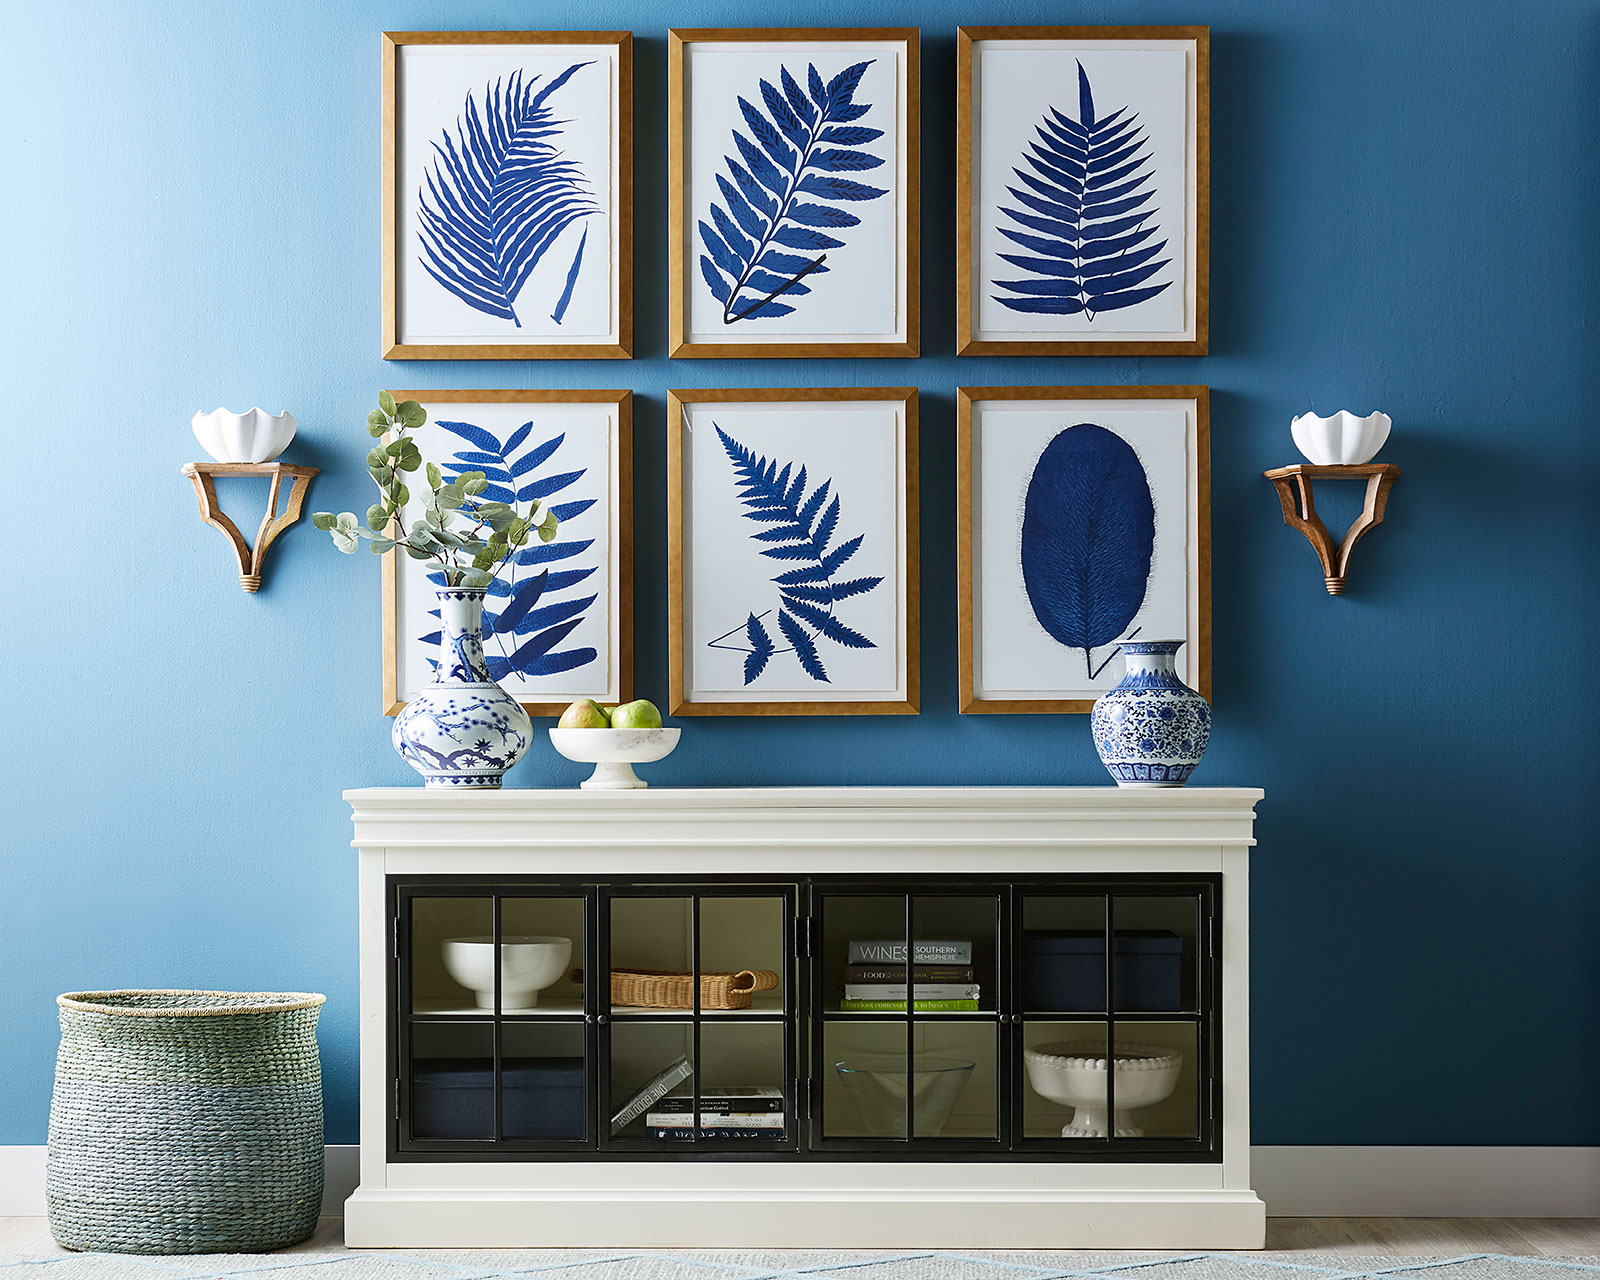 Hanging Wall Art The Complete Guide How To Decorate